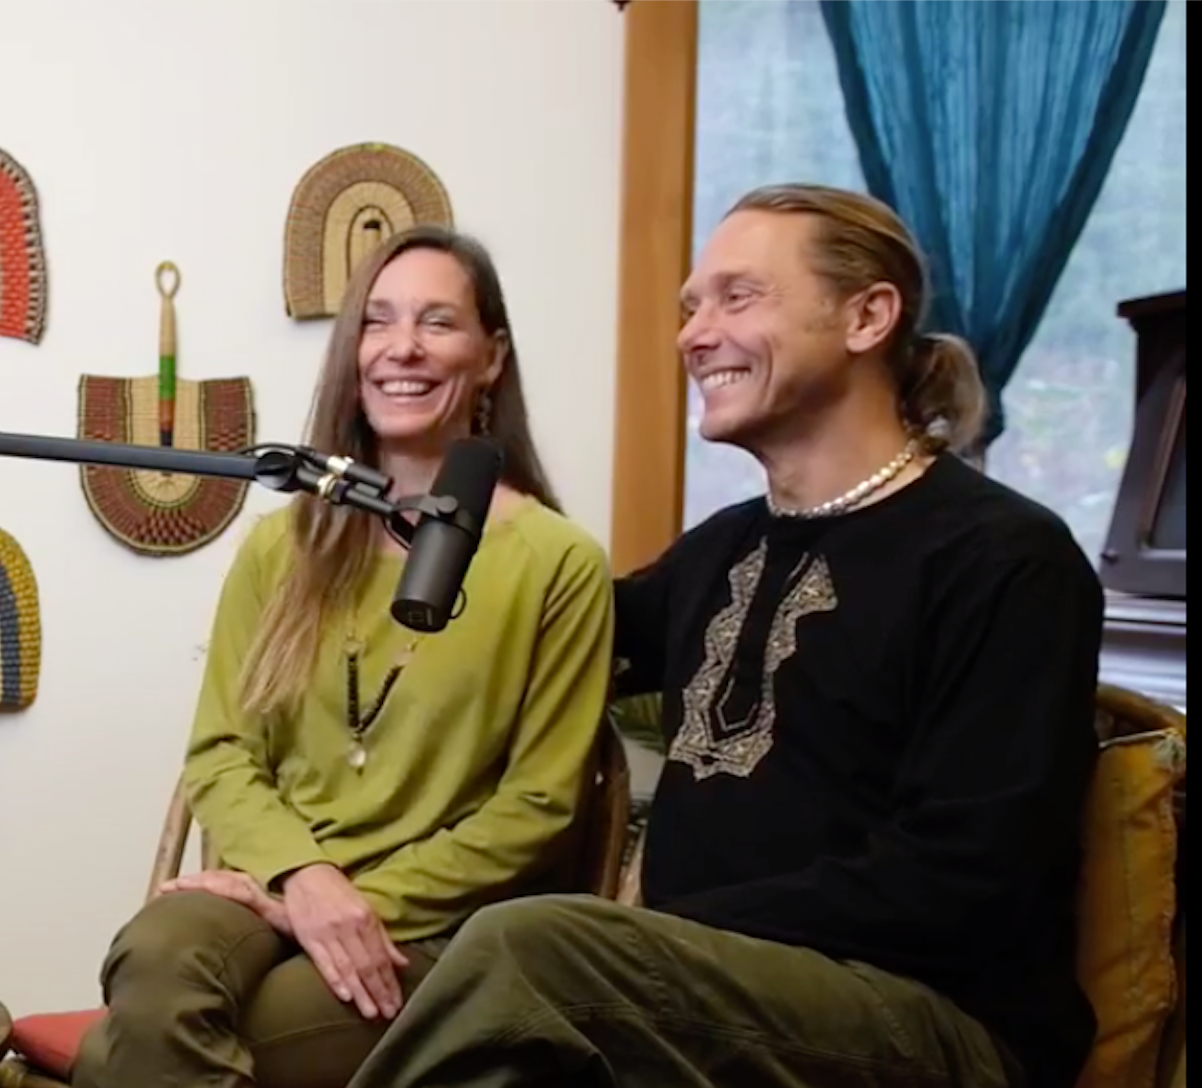 stacy and markus recording a podcast